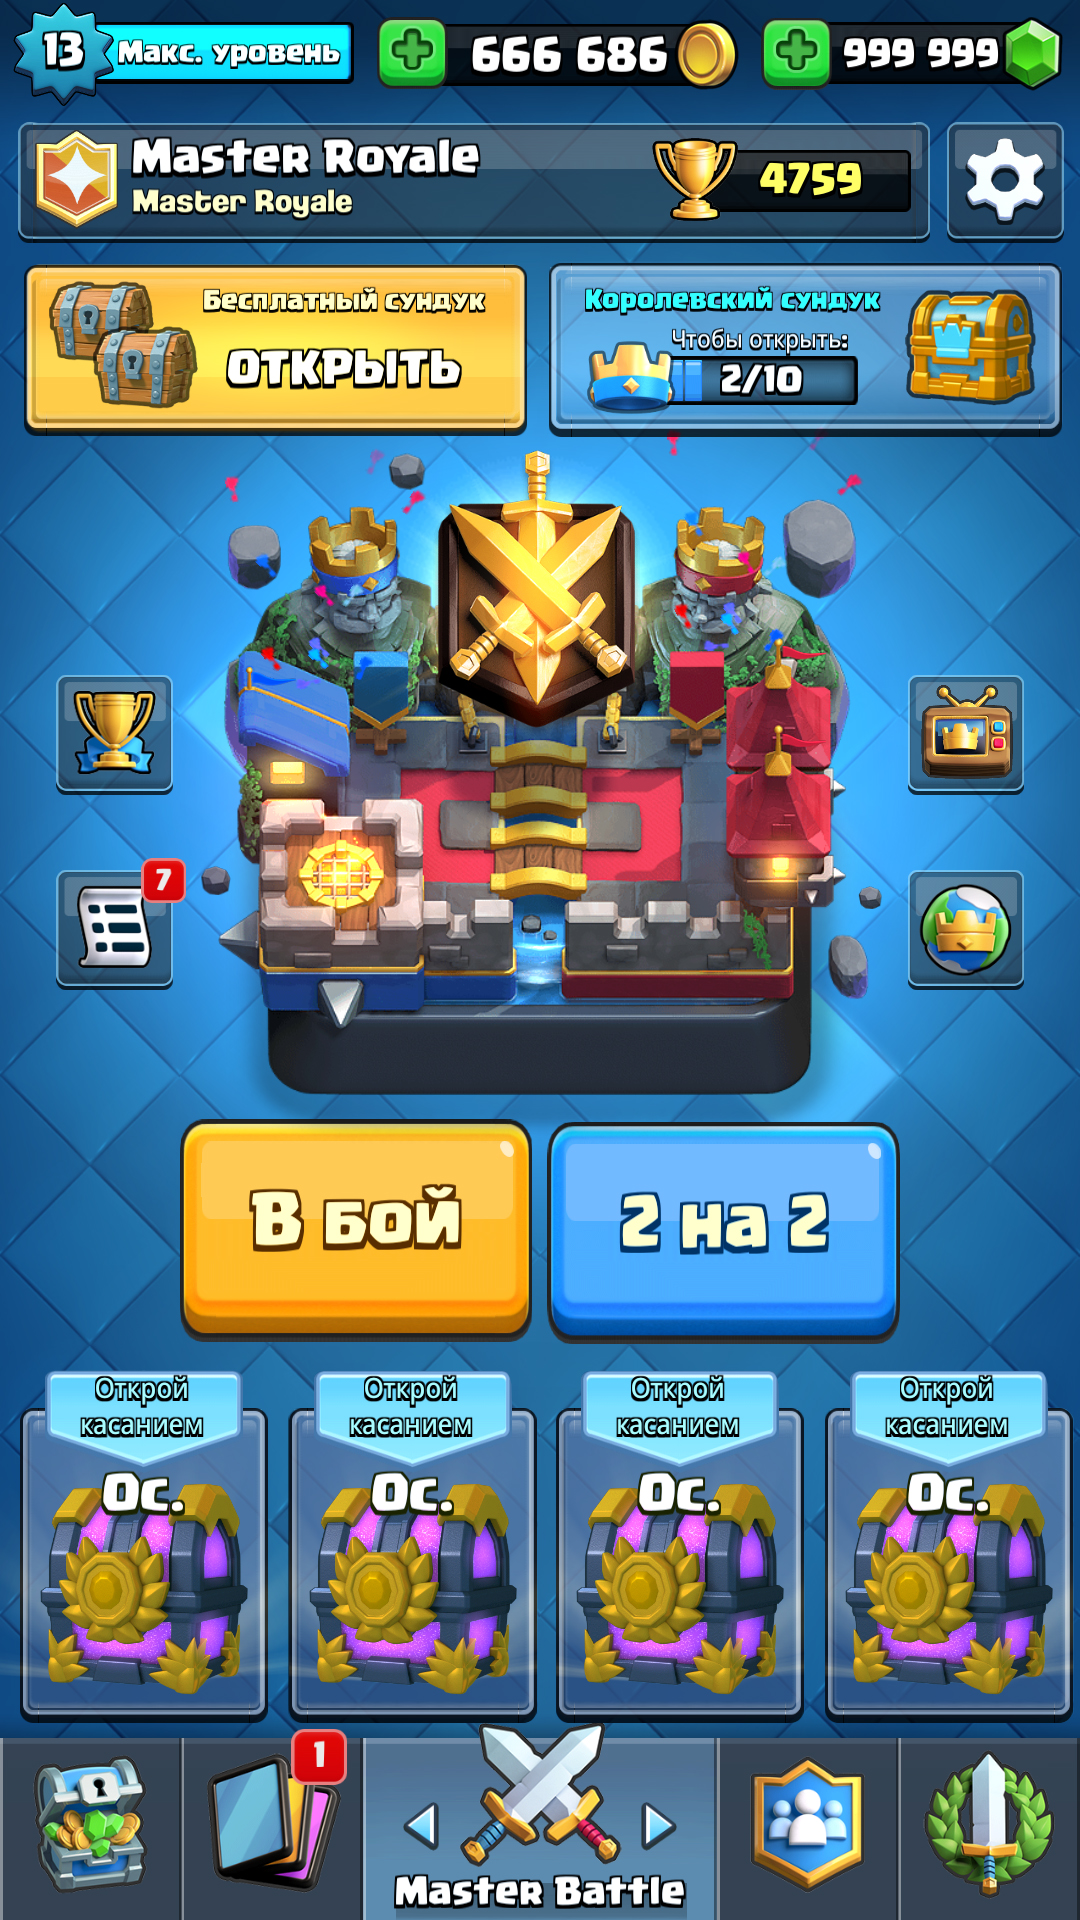 Master Royale S1